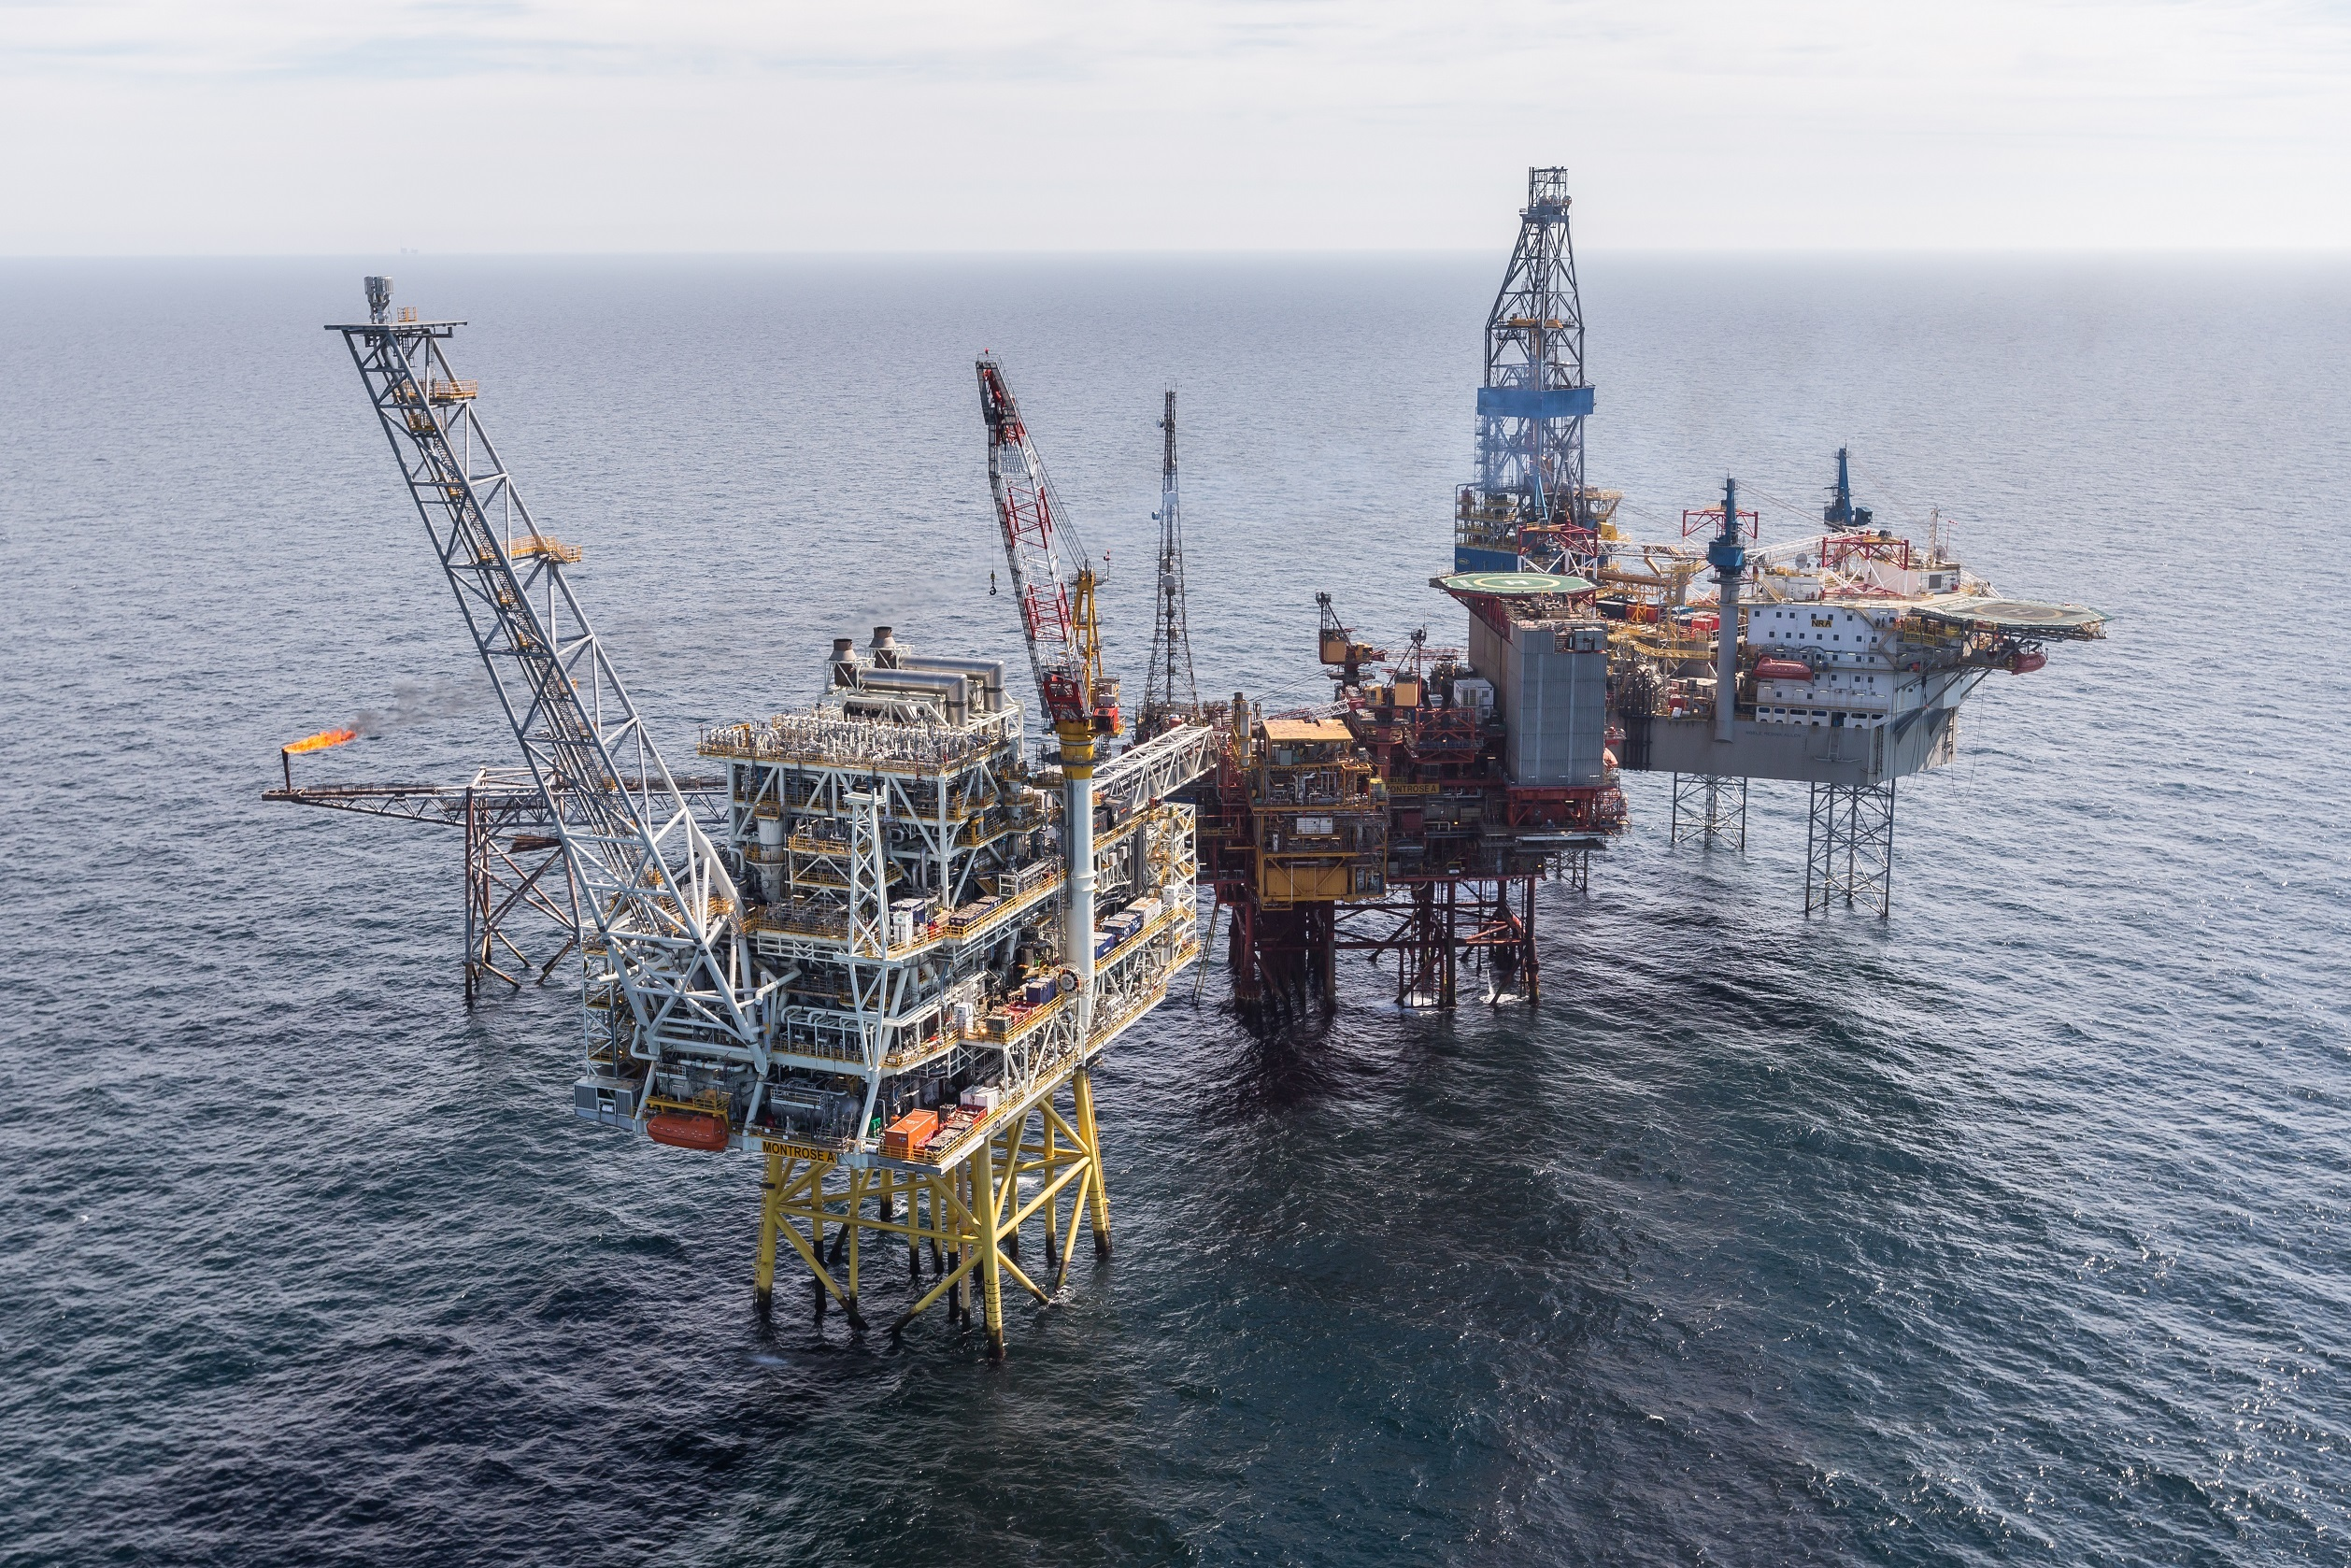 The Repsol Sinopec Resourses UK Montrose Alpha platform with the Montrose BLP located in the North Sea